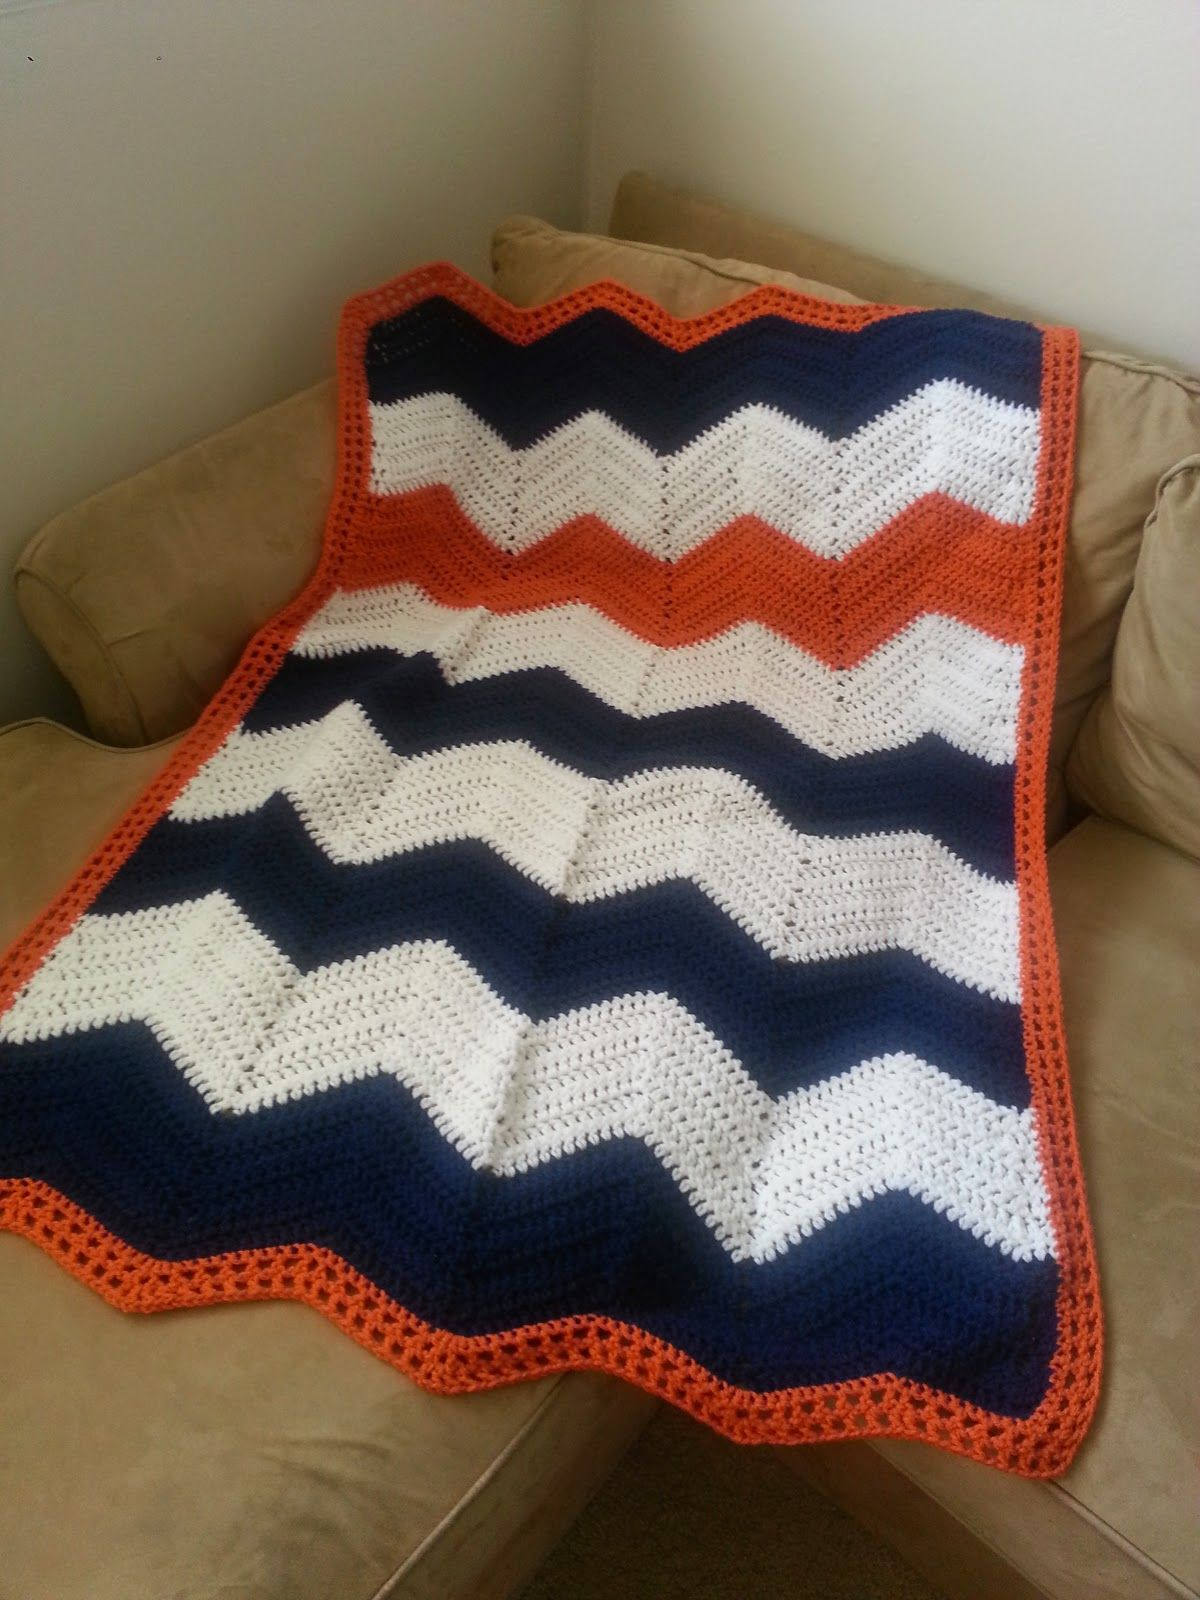 Creative Highs: Crochet Chevron Blanket Free Pattern | Crochet ...